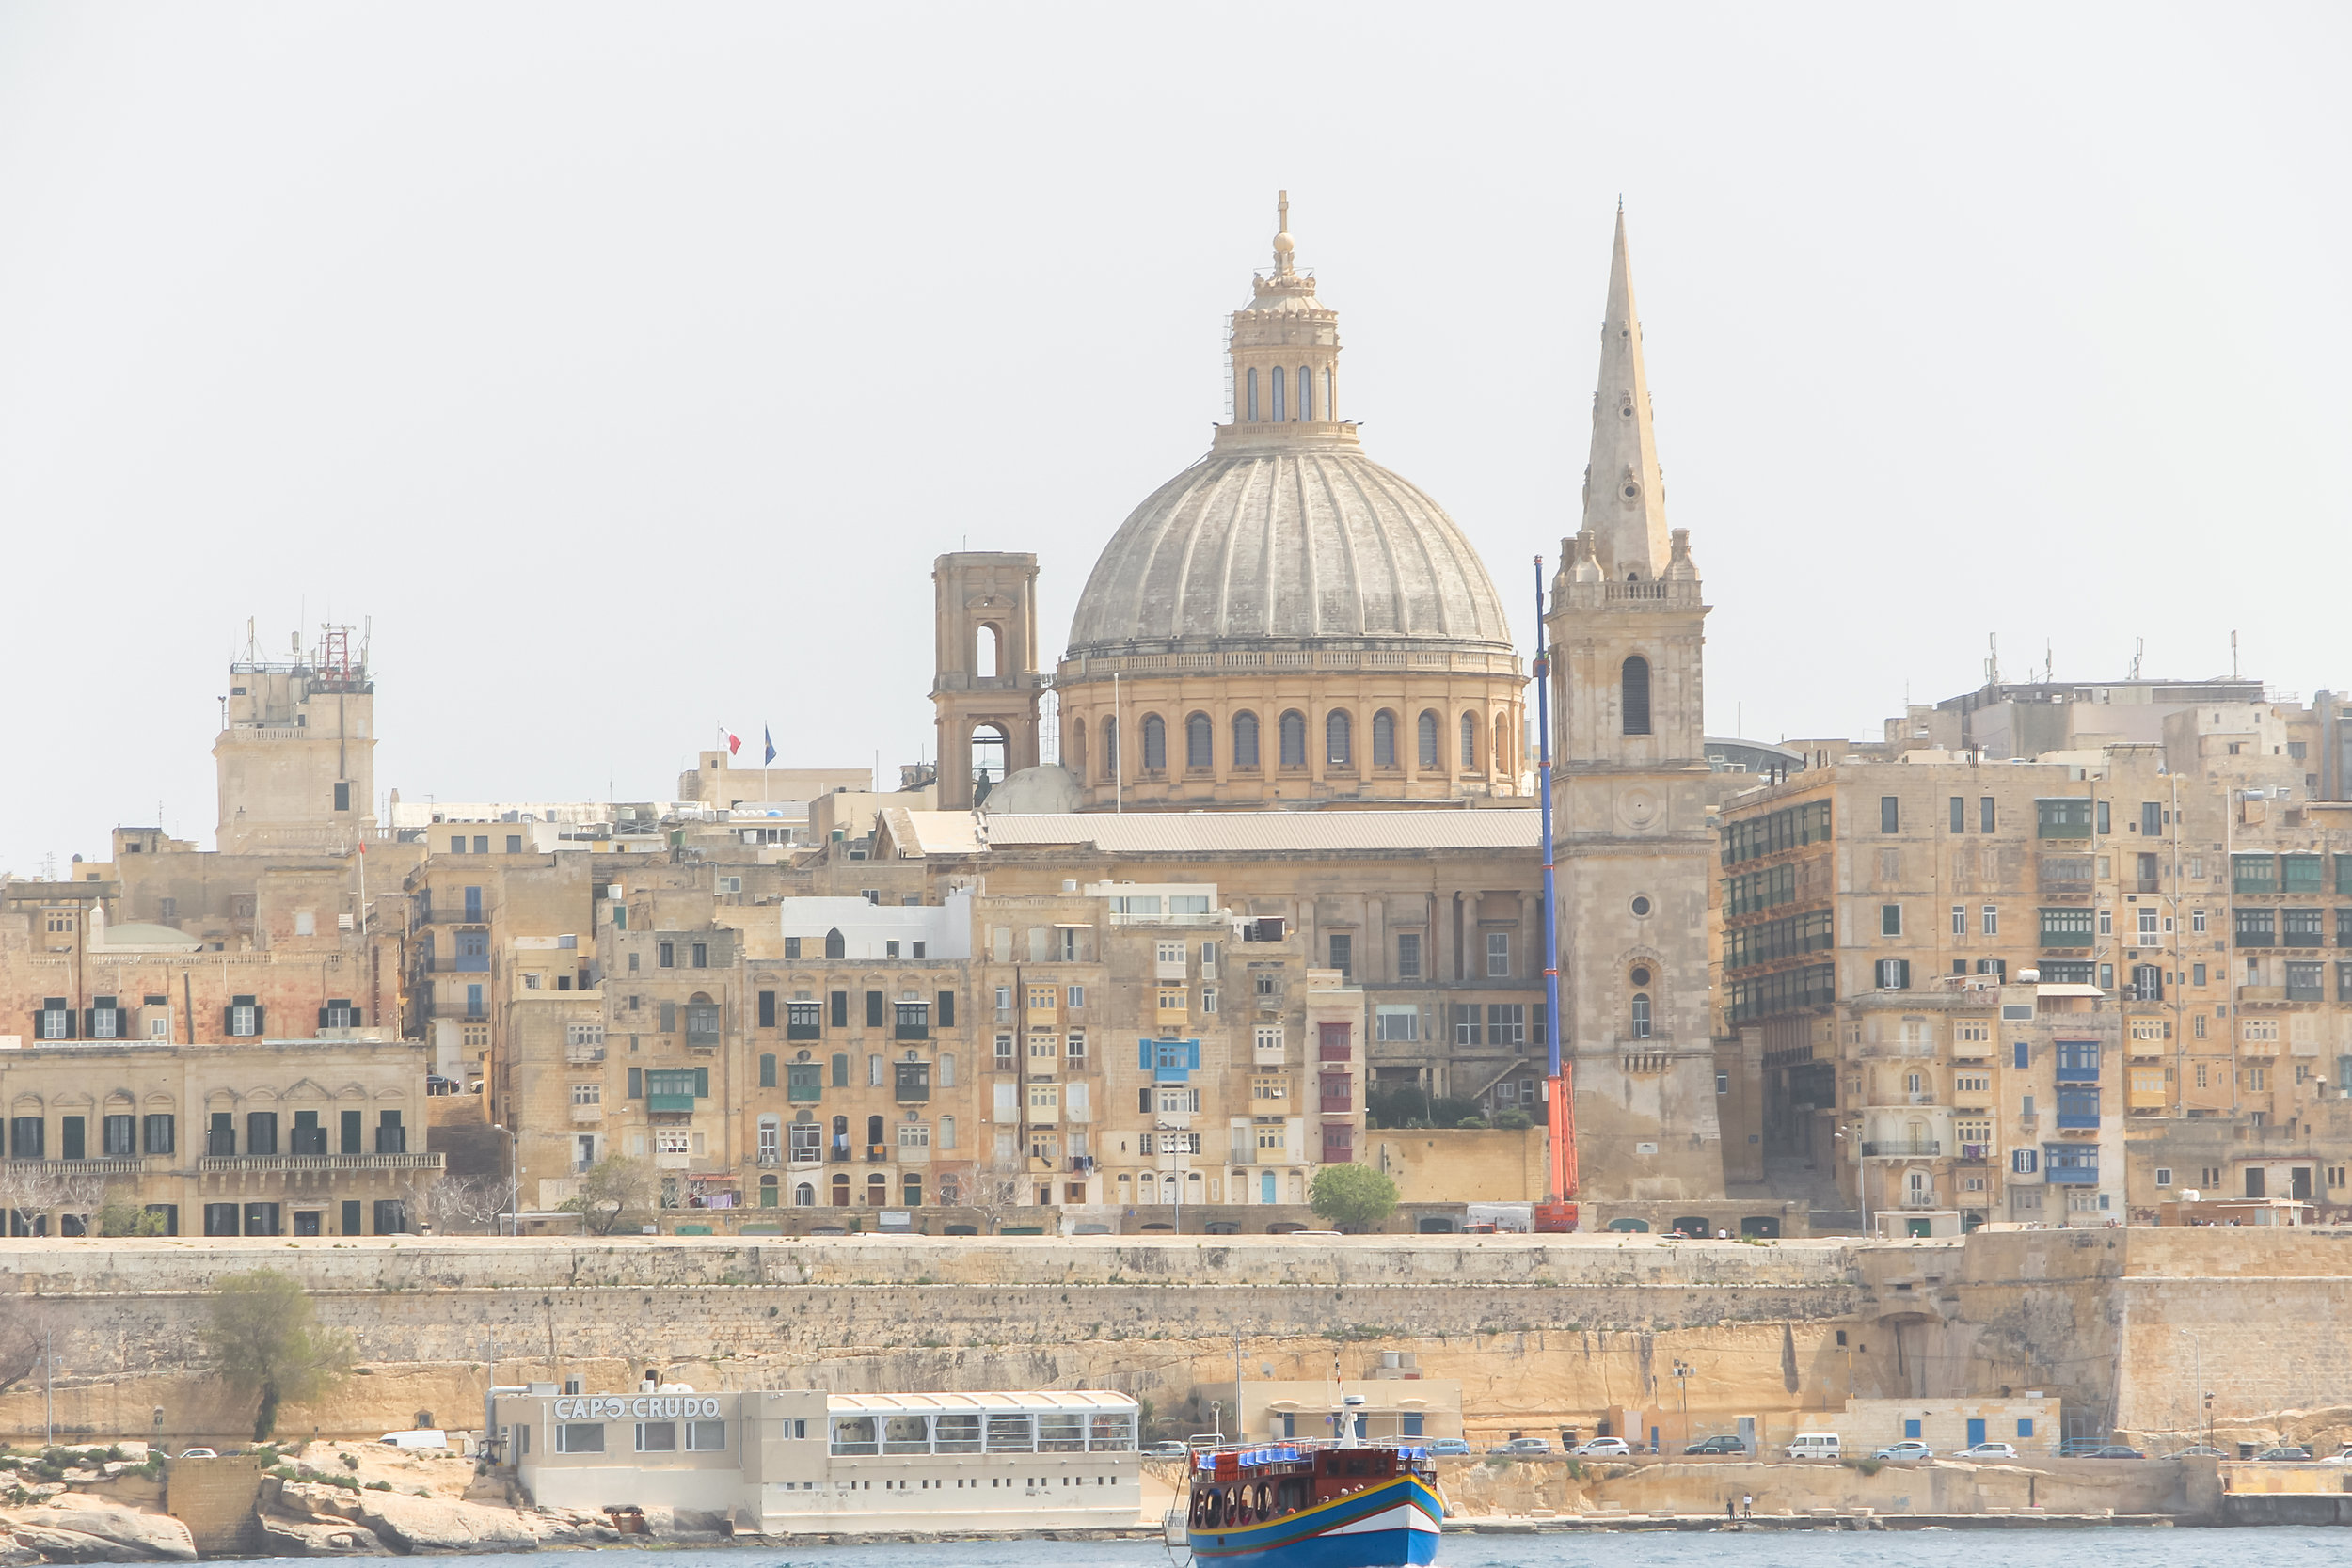 Old Town of Valletta | Carmelite Church, the tower of St Paul's Pro-Cathedral | and the Mediterranean Sea | - Thinking about appreciation for quality in Malta | Malta, Europe | DoLessGetMoreDone.com | - Canon Minimal Travel Documentary Photography - search for liveability | Sustainability